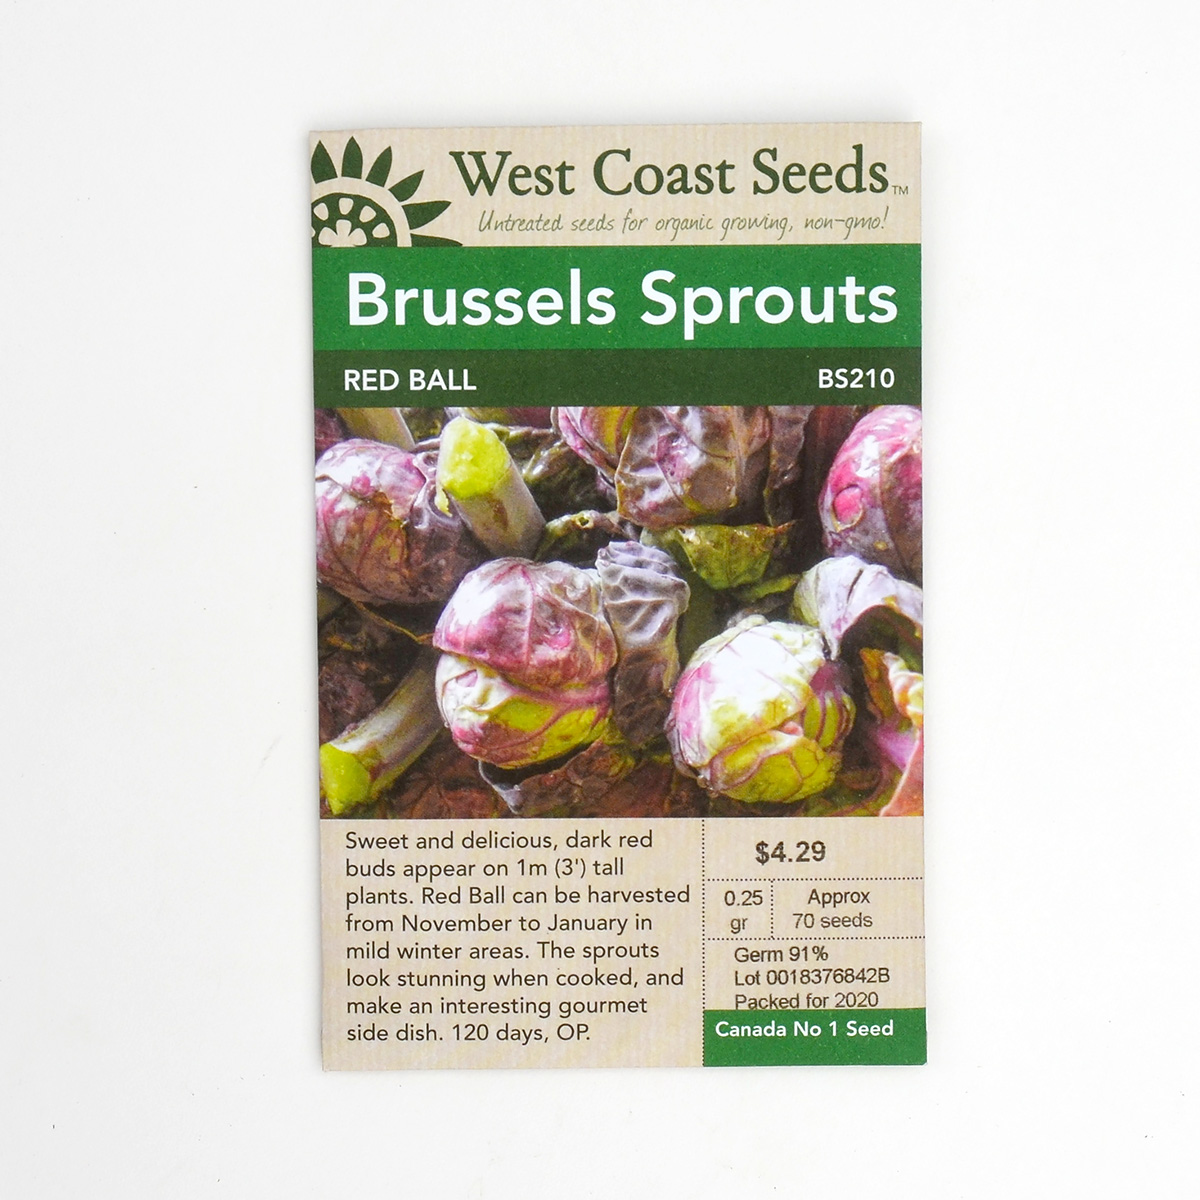 Brussels Sprouts Red Ball Seeds BS210